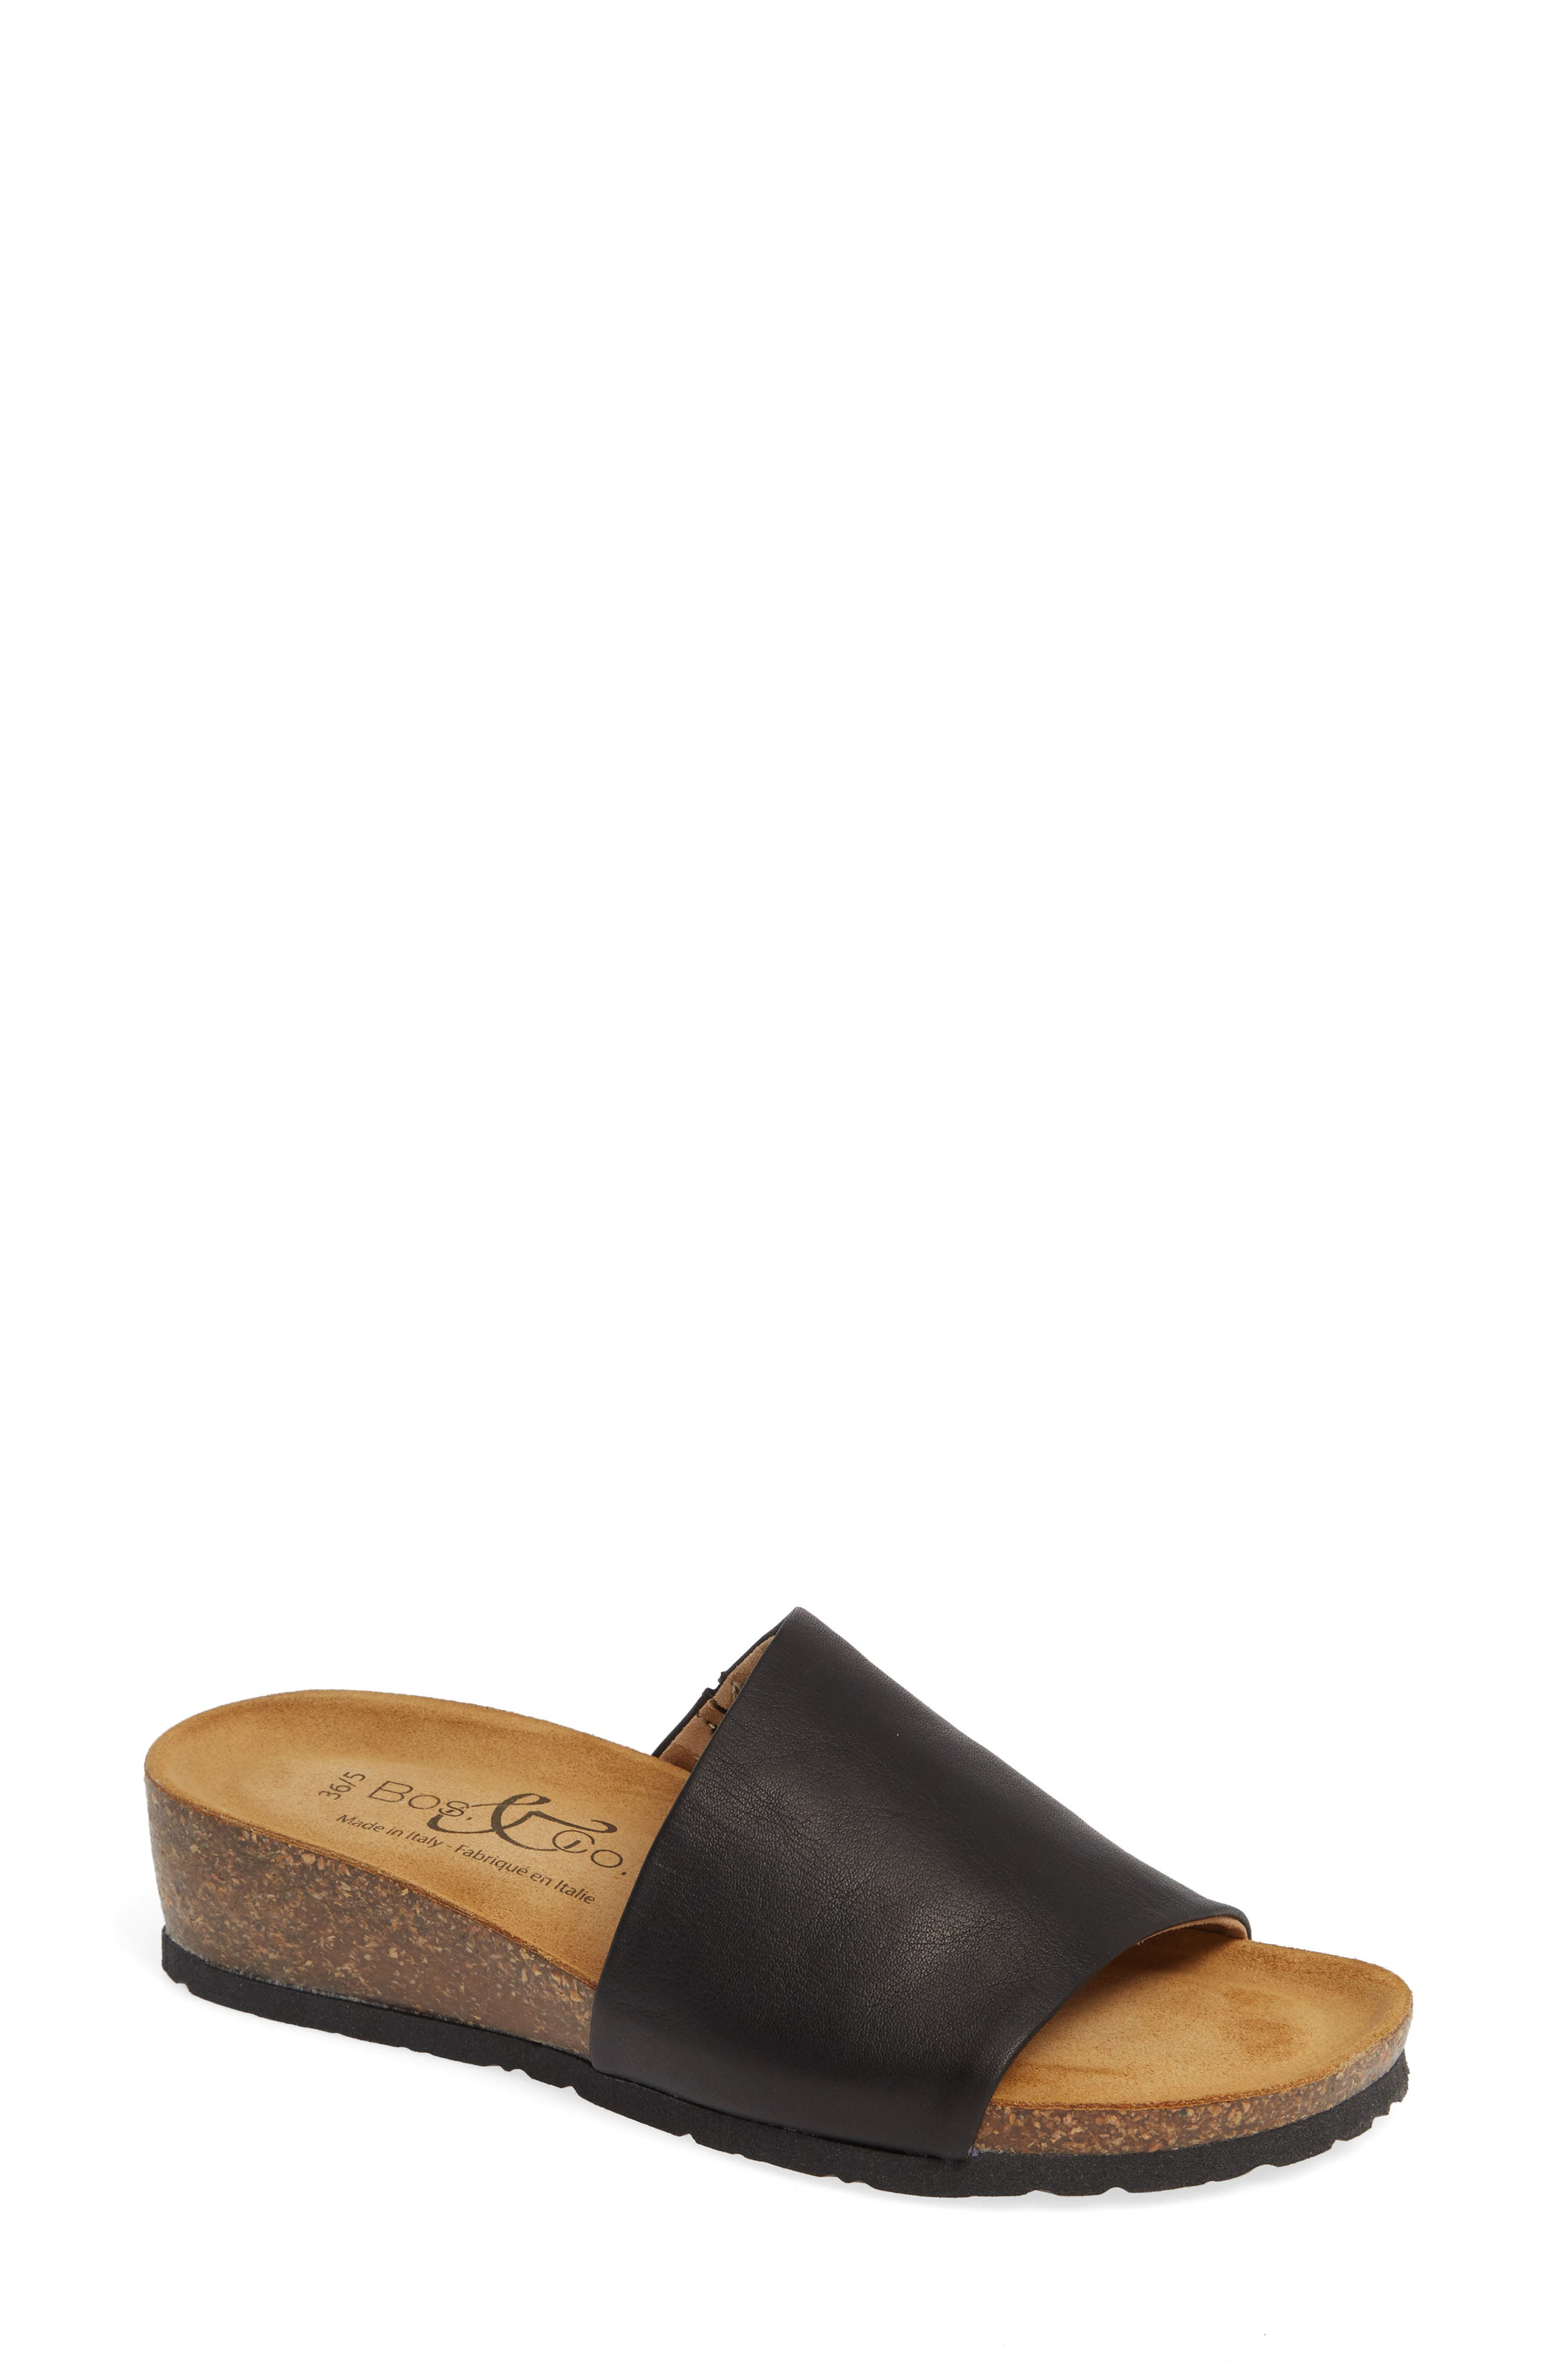 BOS. & CO. Lux Slide Sandal, Main, color, BLACK NAPPA LEATHER